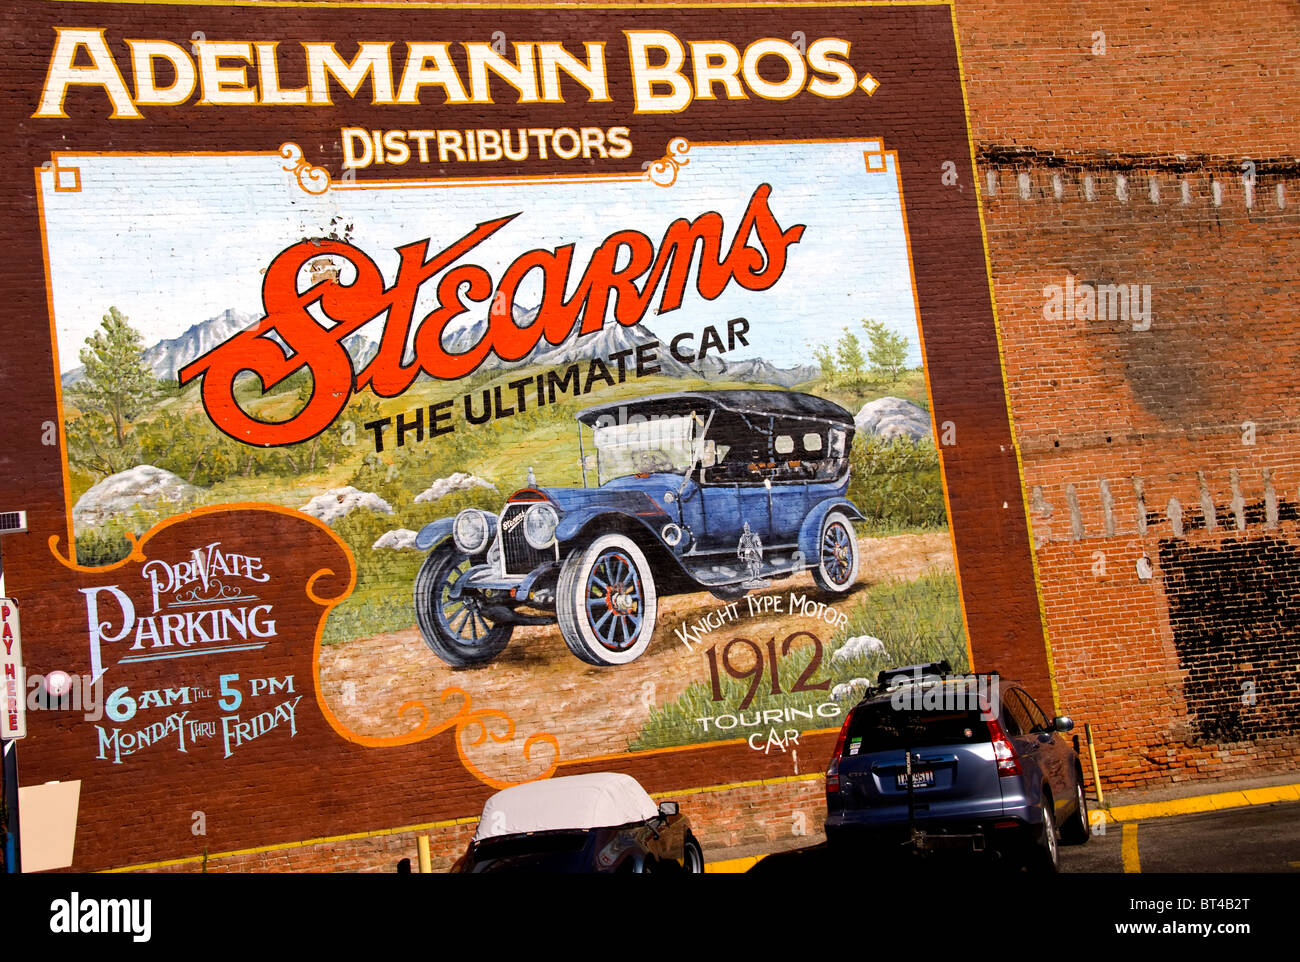 Mural of previous motor car company on side of Adelmann Building, Boise, Idaho - Stock Image